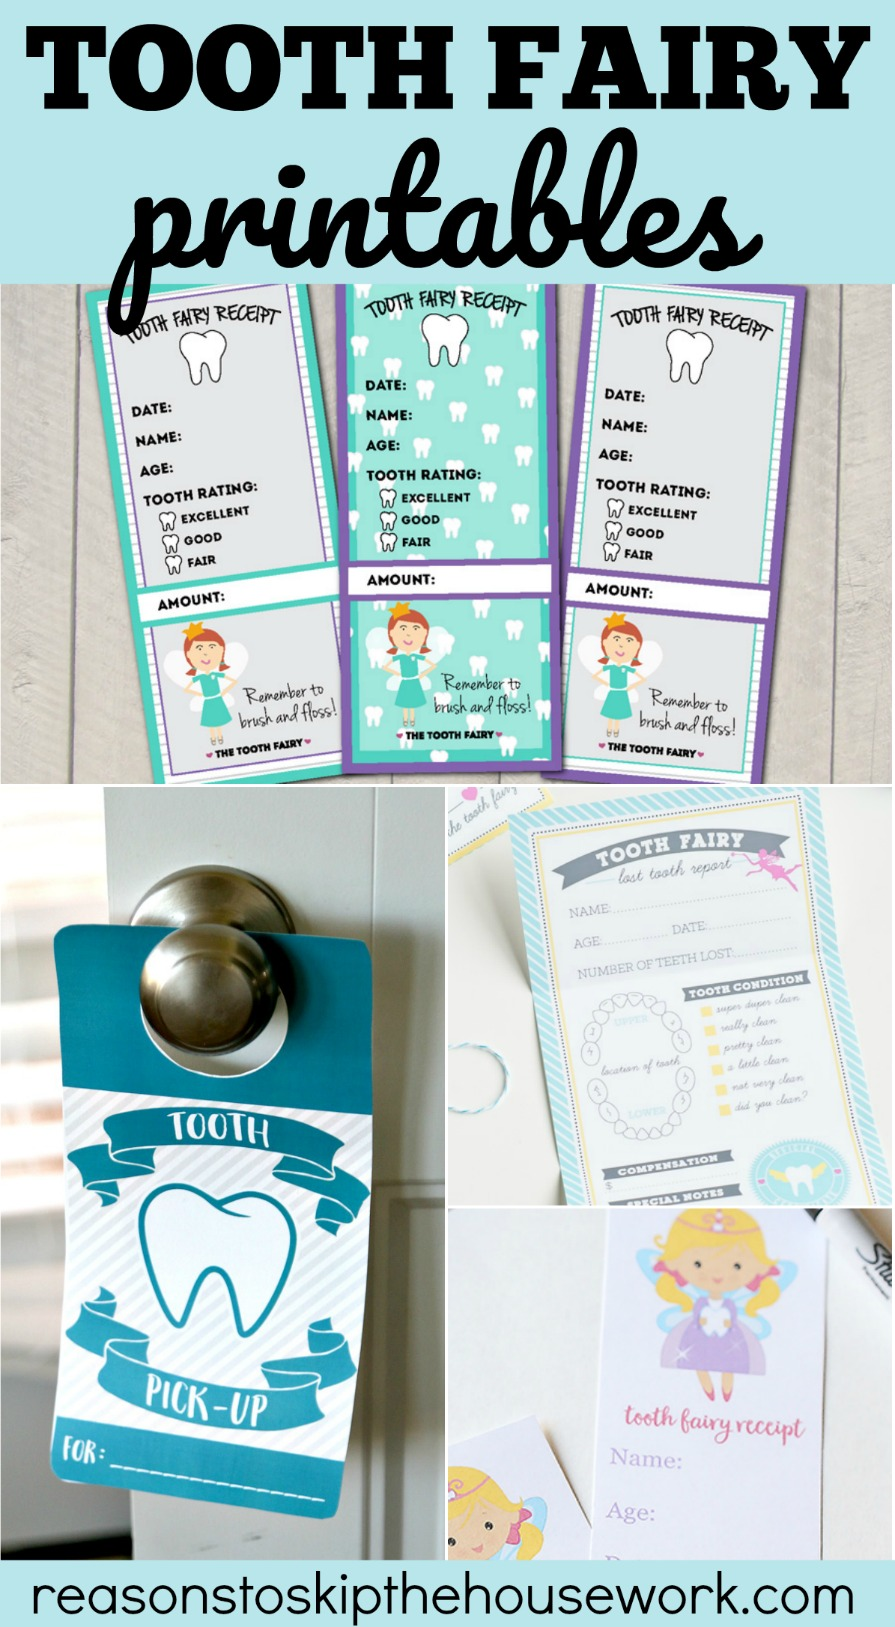 Tooth Fairy Printables that help you create the perfect family tradition!